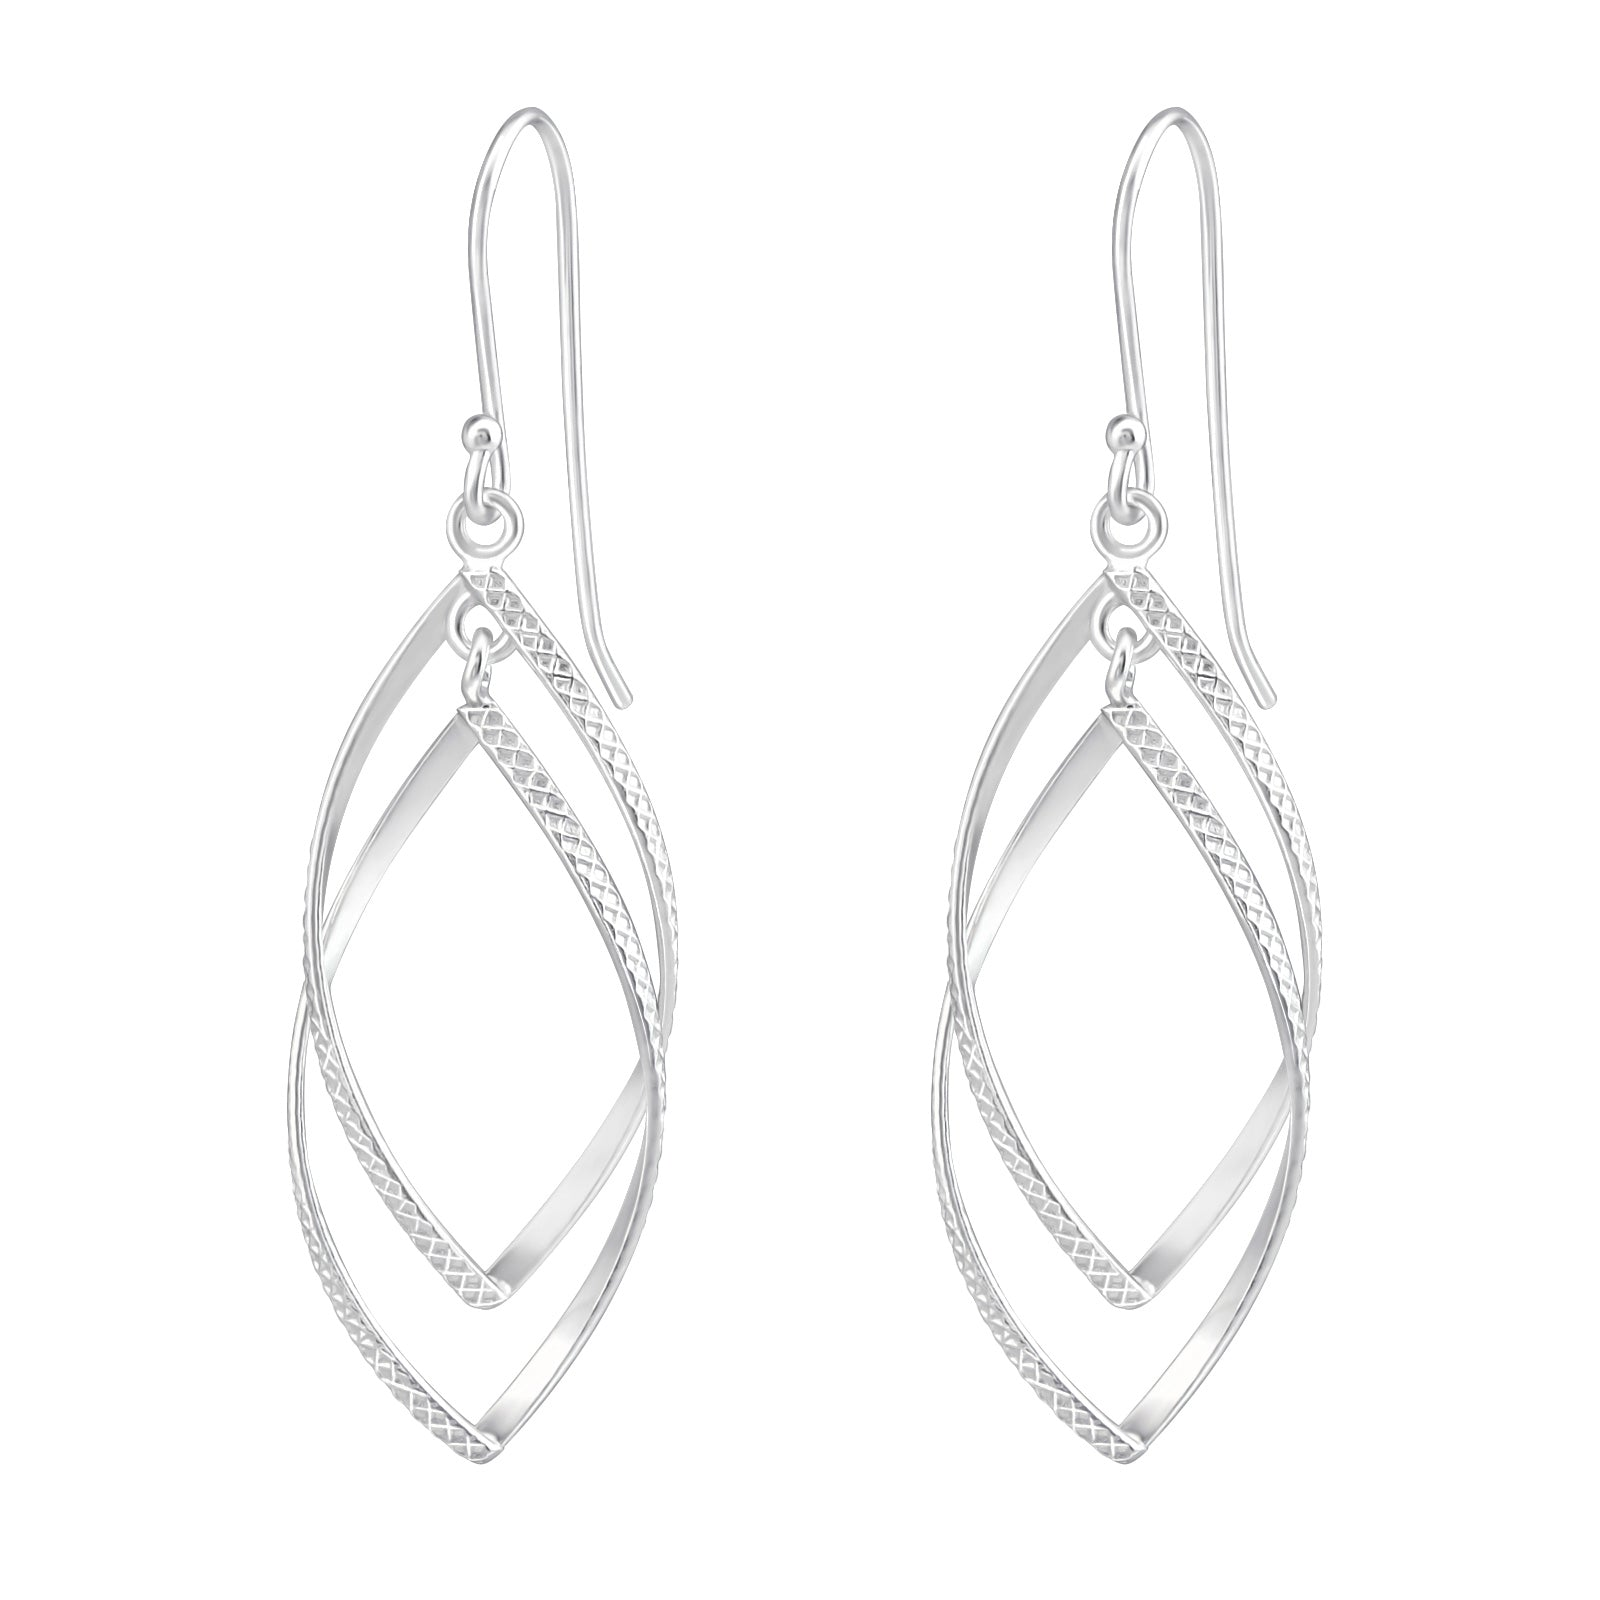 Sterling Silver Twisted Drop Earrings.